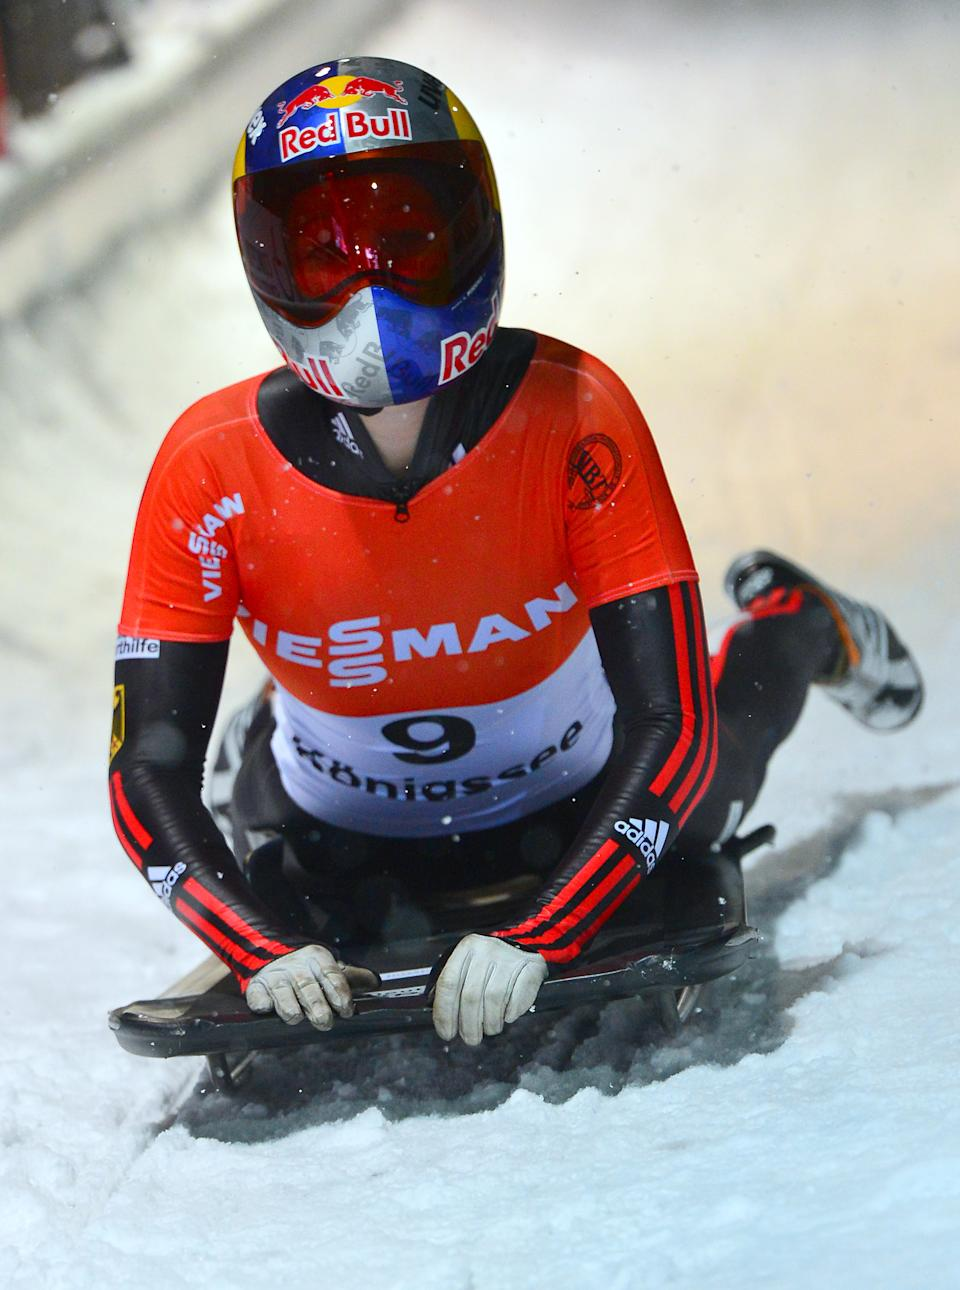 Germany's third placed Anja Huber in the finish area  after the women's Skeleton World Cup race  in Koenigssee, Germany, Friday, Jan. 11, 2013. (AP Photo/Kerstin Joensson)